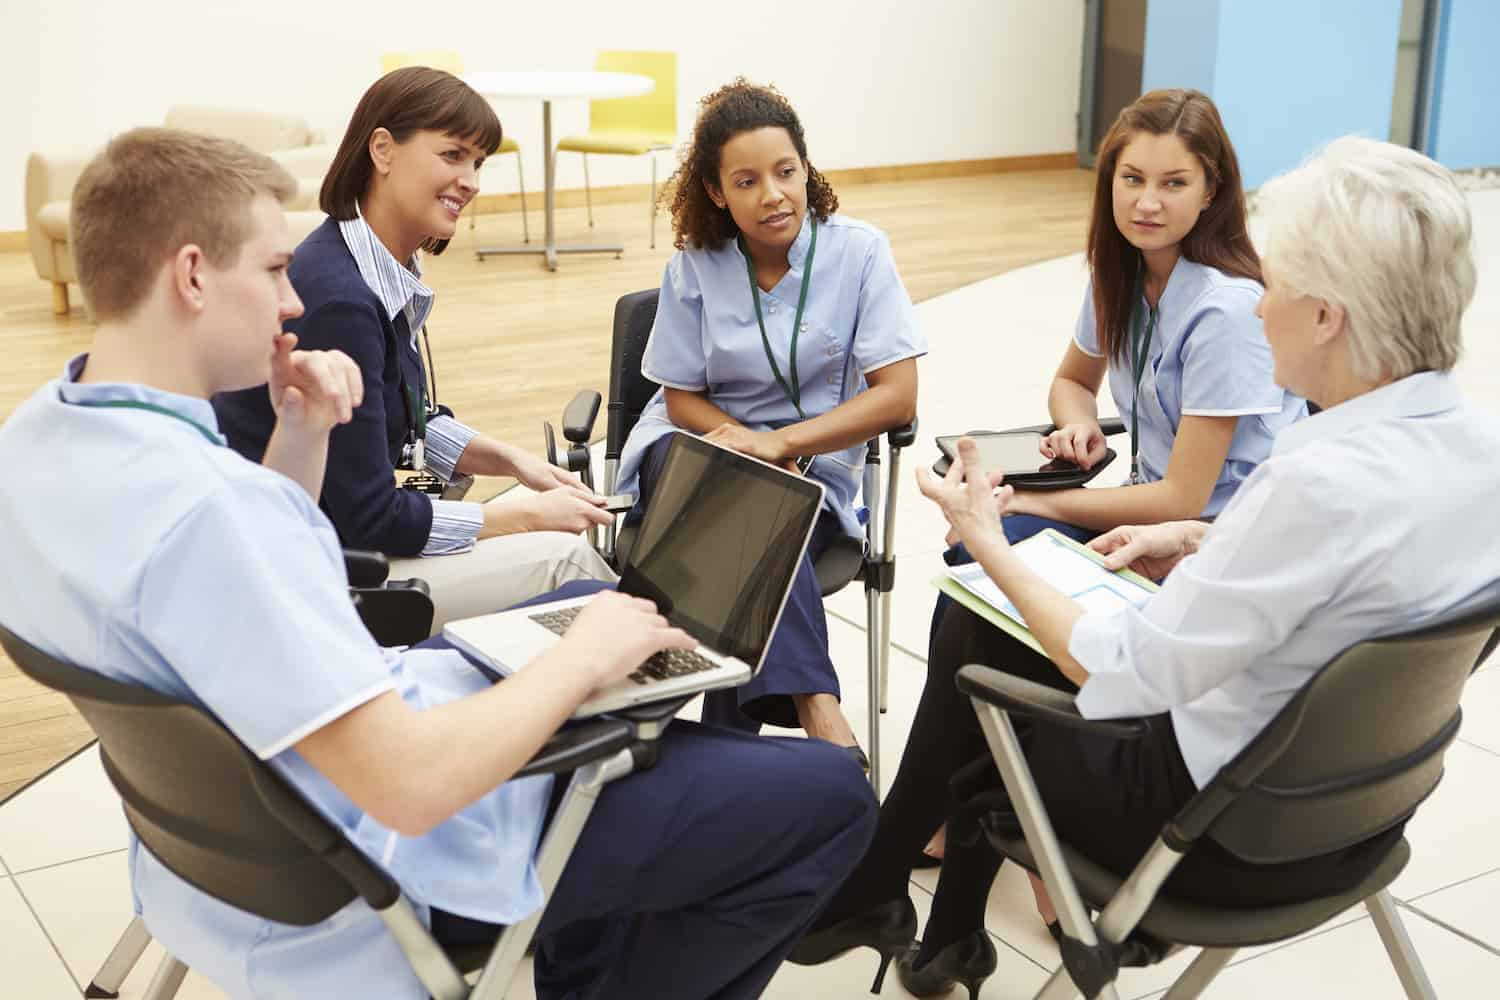 Group of nurses in meeting